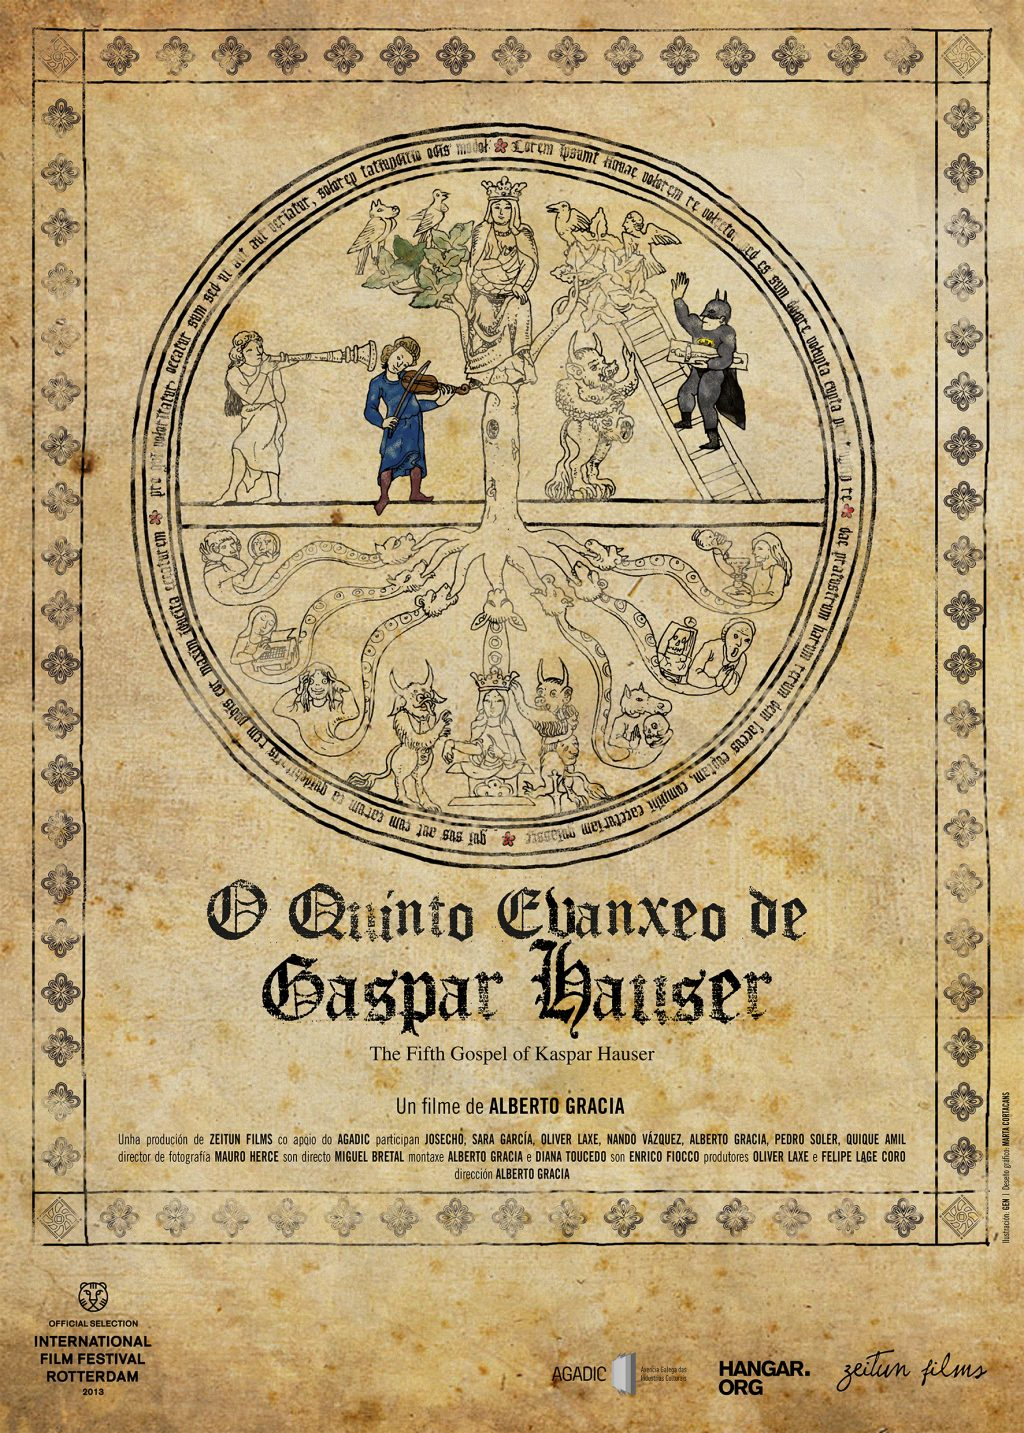 THE_FIFTH_GOSPEL_OF_KASPAR_HAUSER - poster